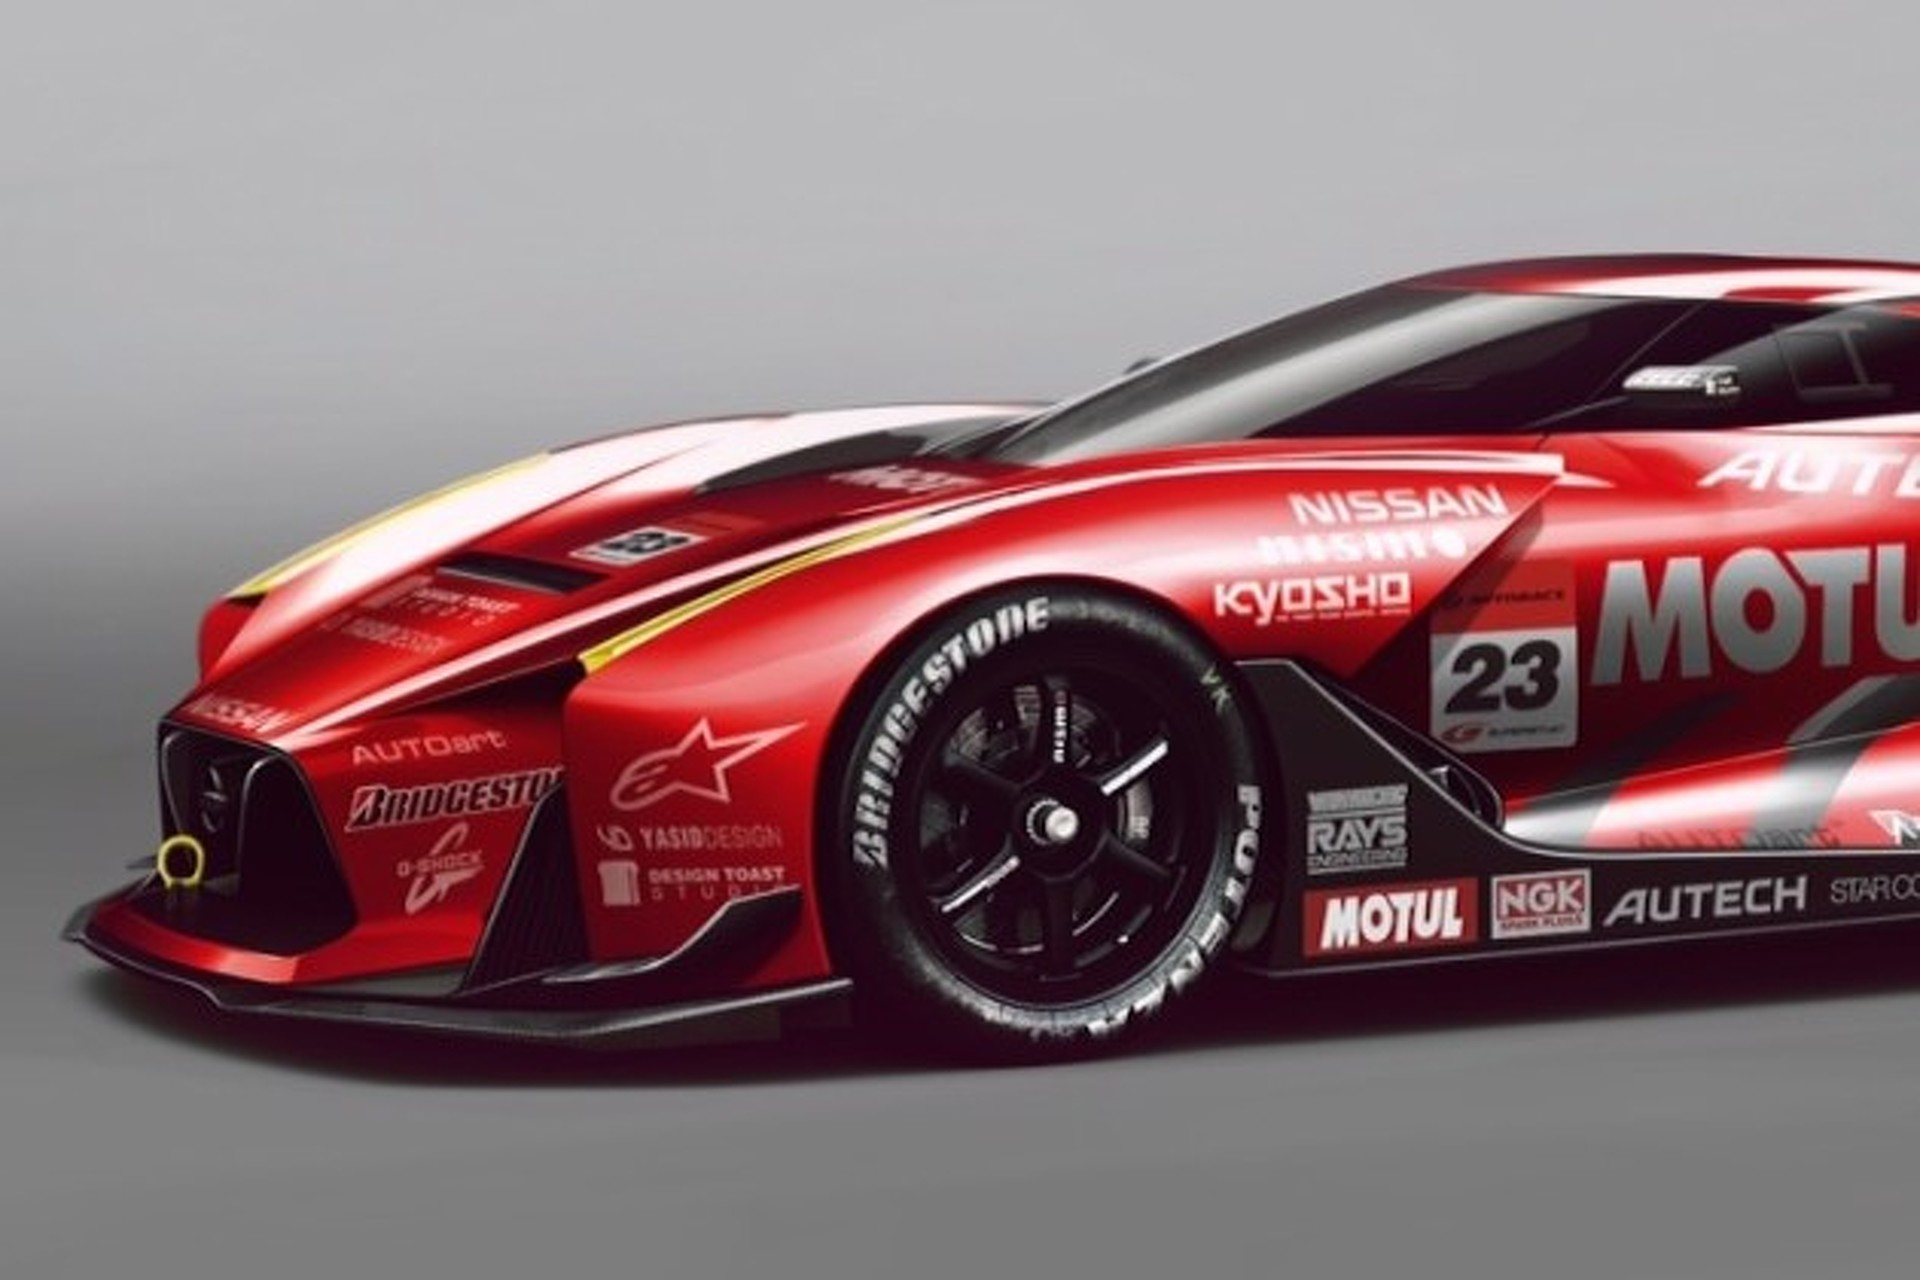 Nissan Gt Concept Covered In Awesome Racing Livery